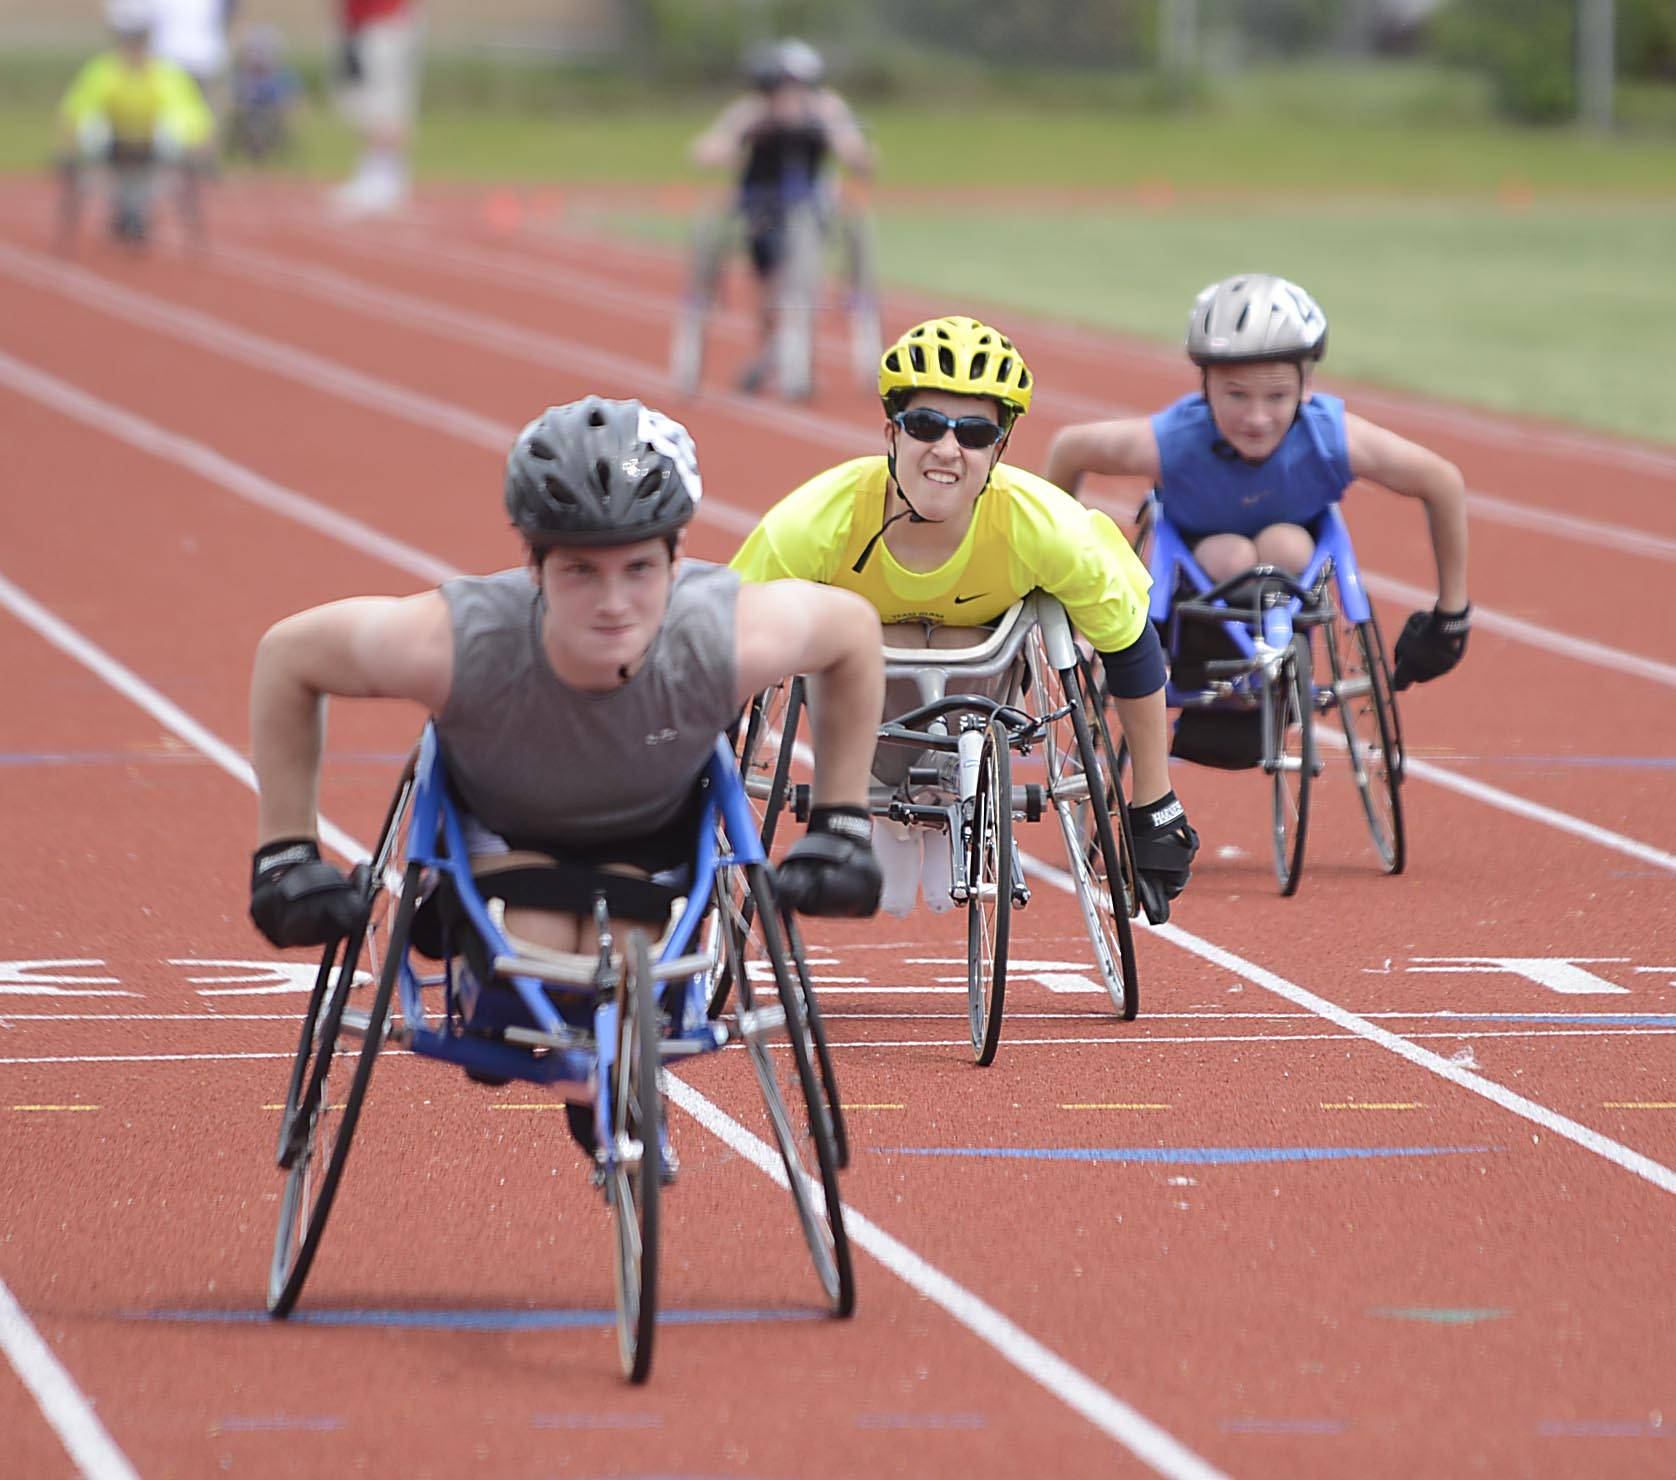 Ethan Burkhardt, 13, of Libertyville, crosses the finish line in the 100 meter dash at the Great Lake Adaptive Sports Association 2014 Adult Regional Games at Lake Forest High School Sunday. Burkhardt was born with spina bifida and has qualified for three events in the national championships in Iowa in July.